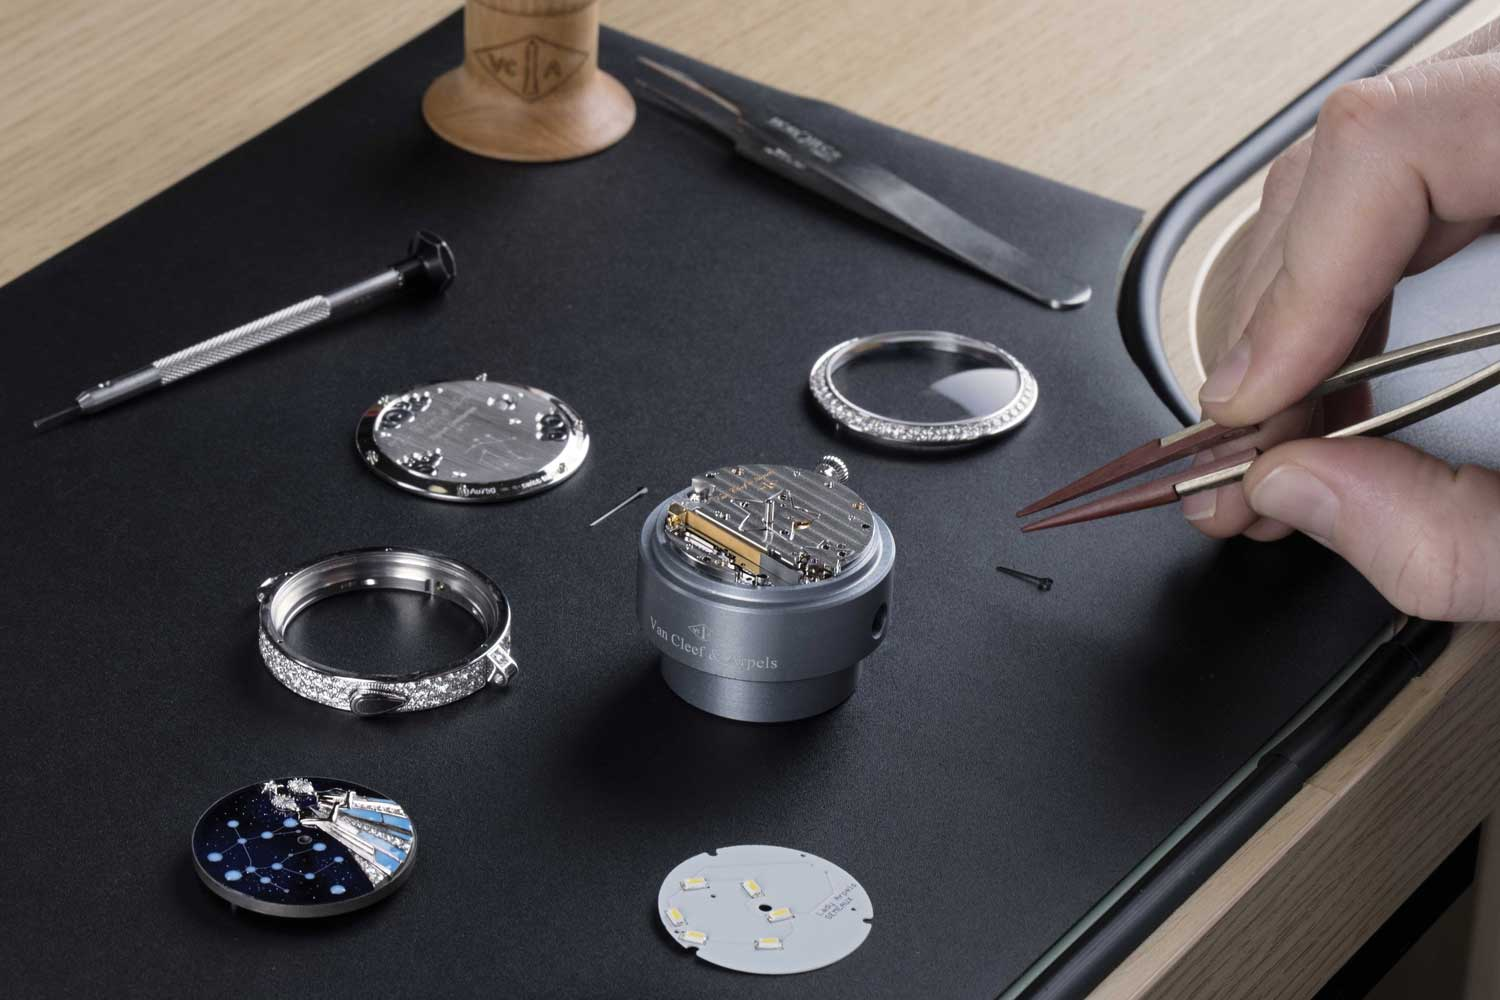 Utilizing piezoelectricity, Van Cleef & Arpels is able to light up the stars on the dial without draining the watch's power reserve